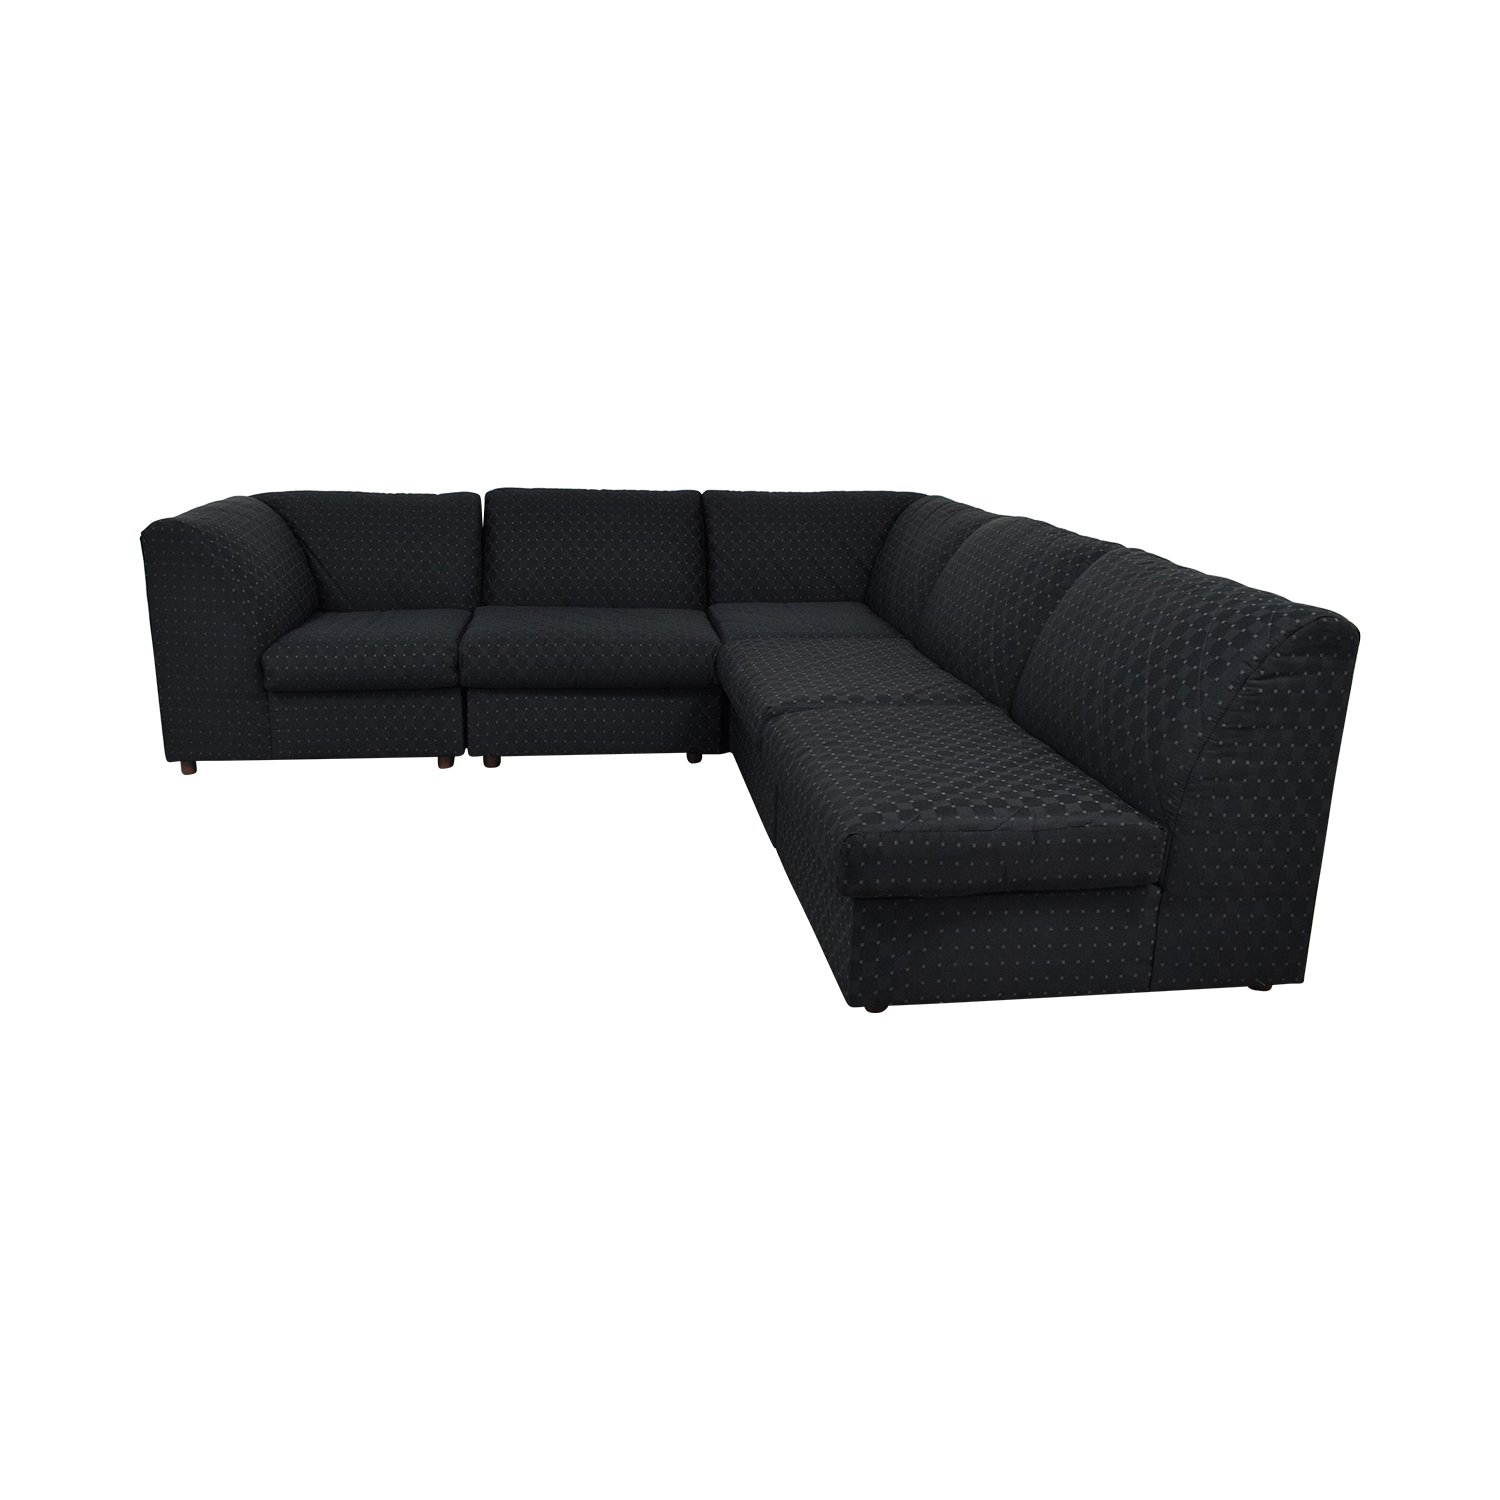 buy Broyhill Furniture Corner Sectional with Ottoman Broyhill Furniture